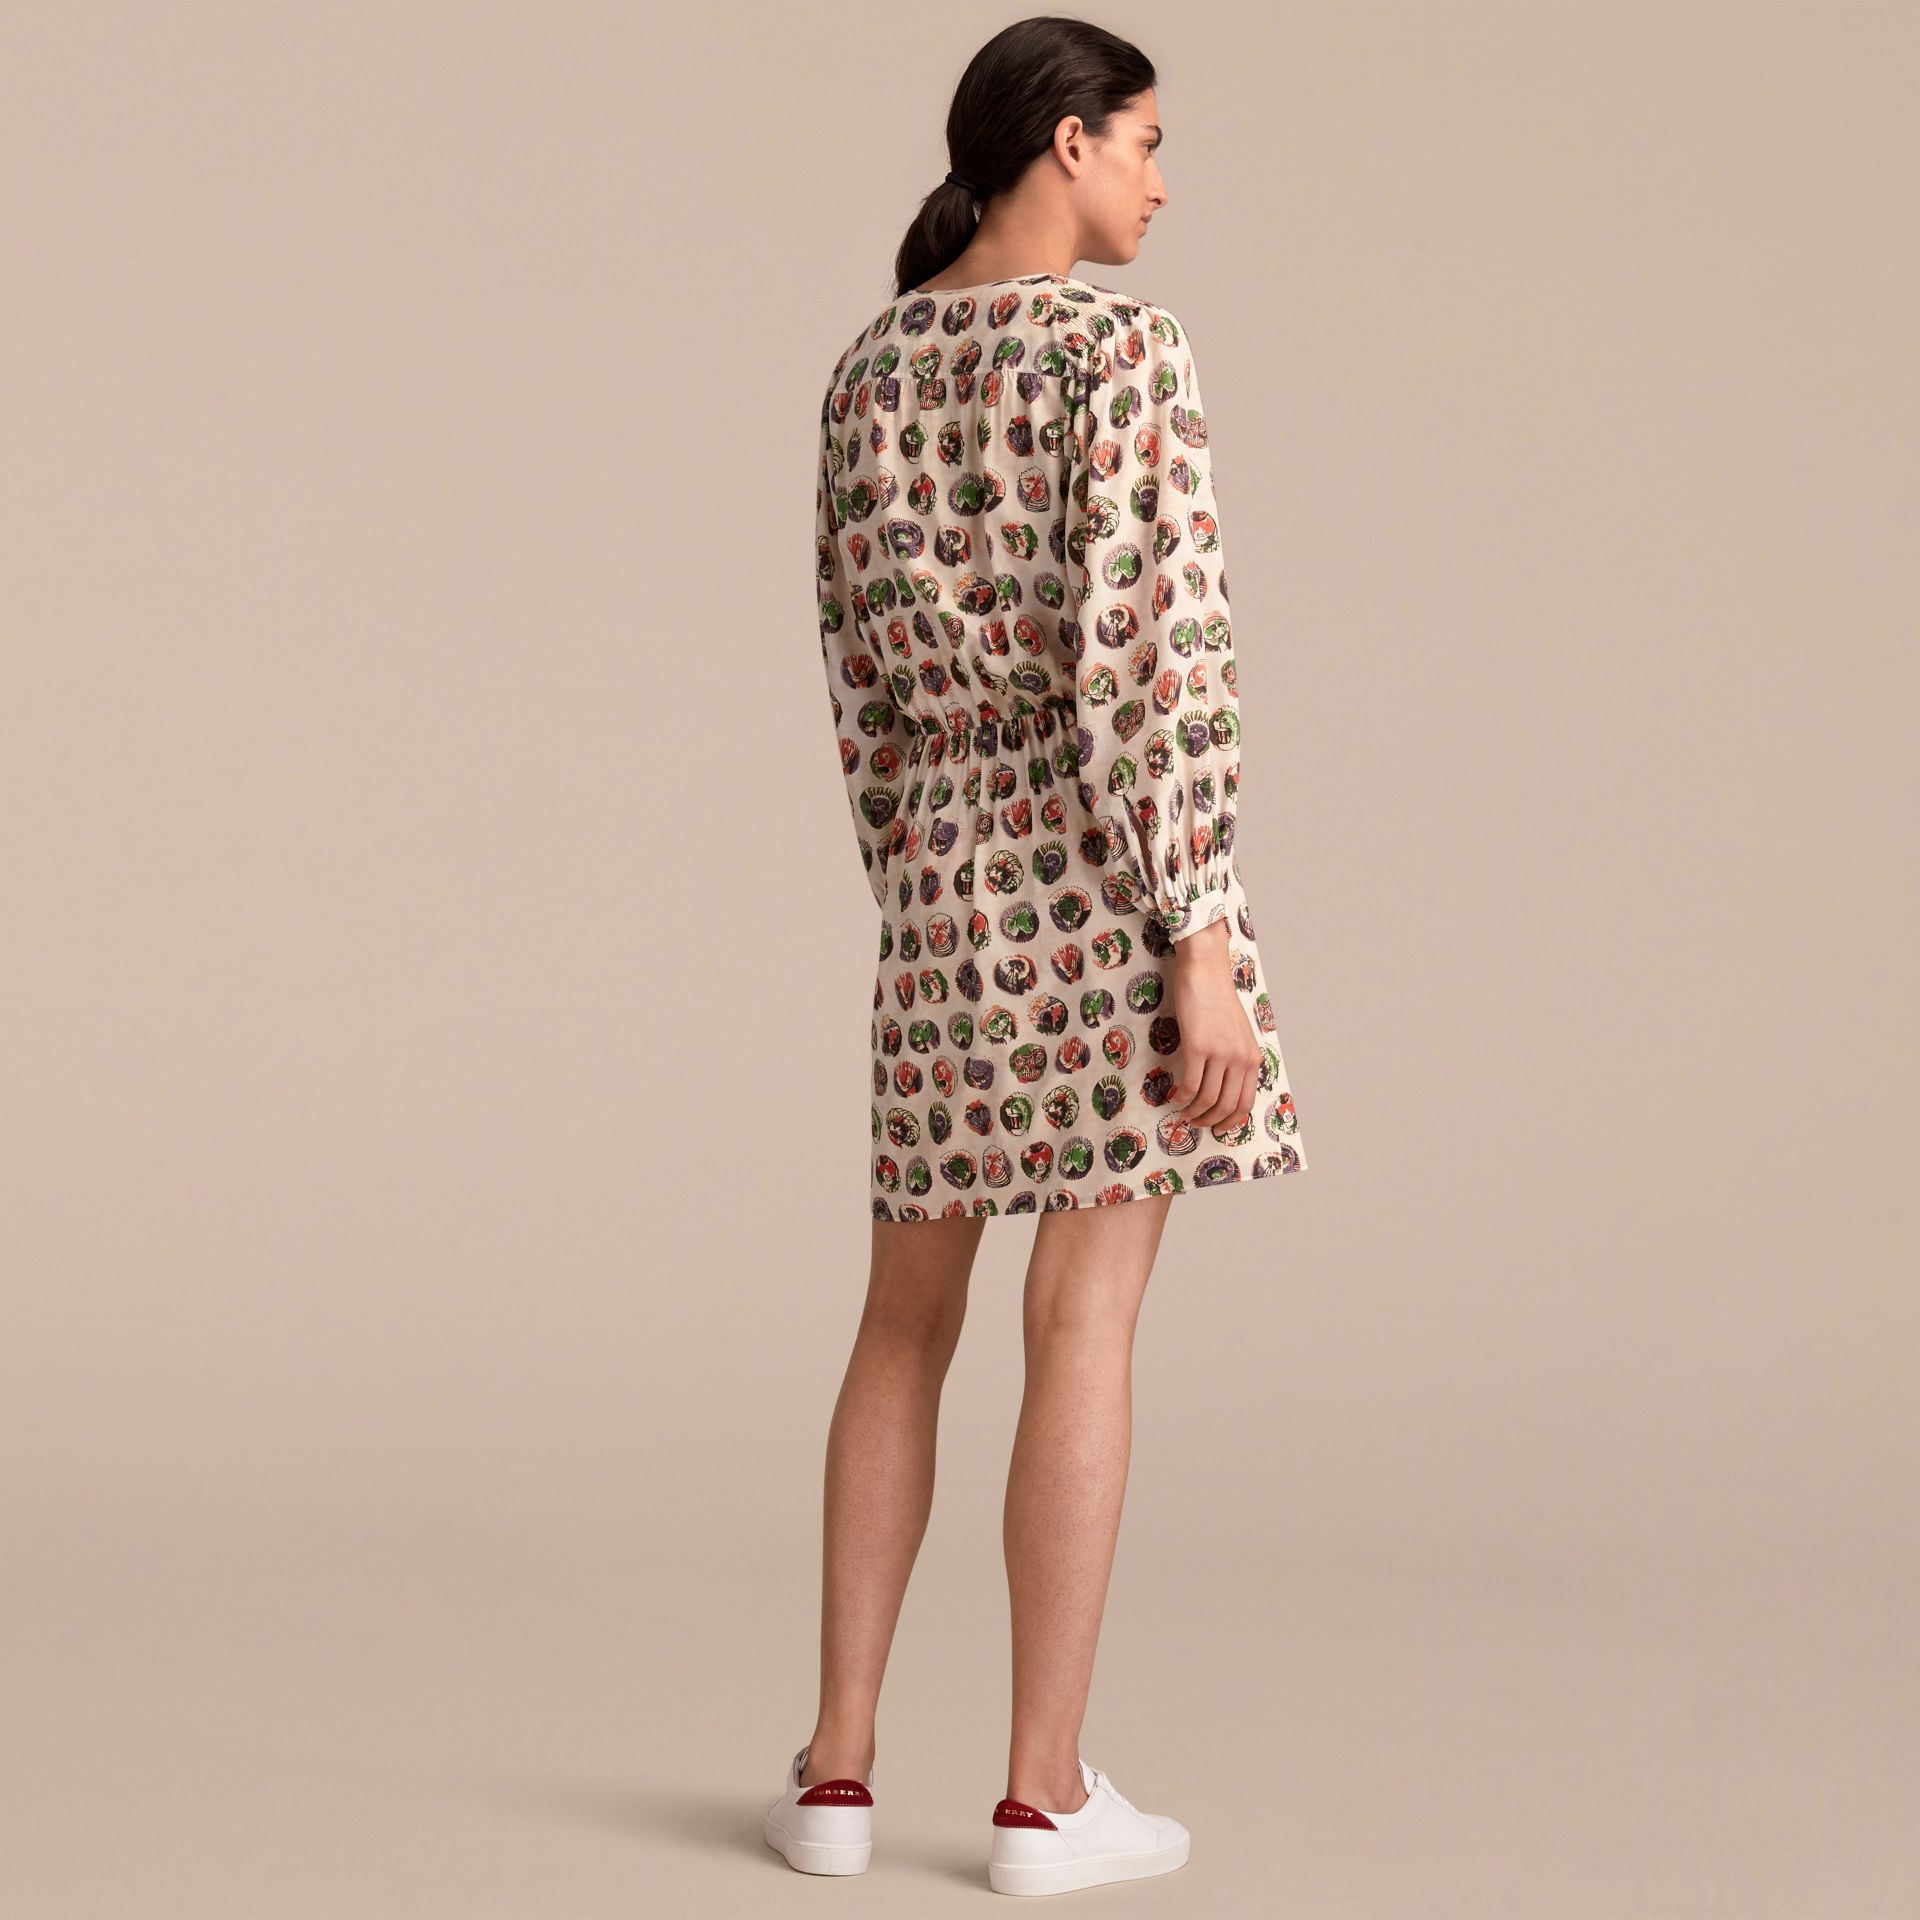 Pallas Heads Print Silk Dress with Neck Tie in Natural White - Women | Burberry - gallery image 3